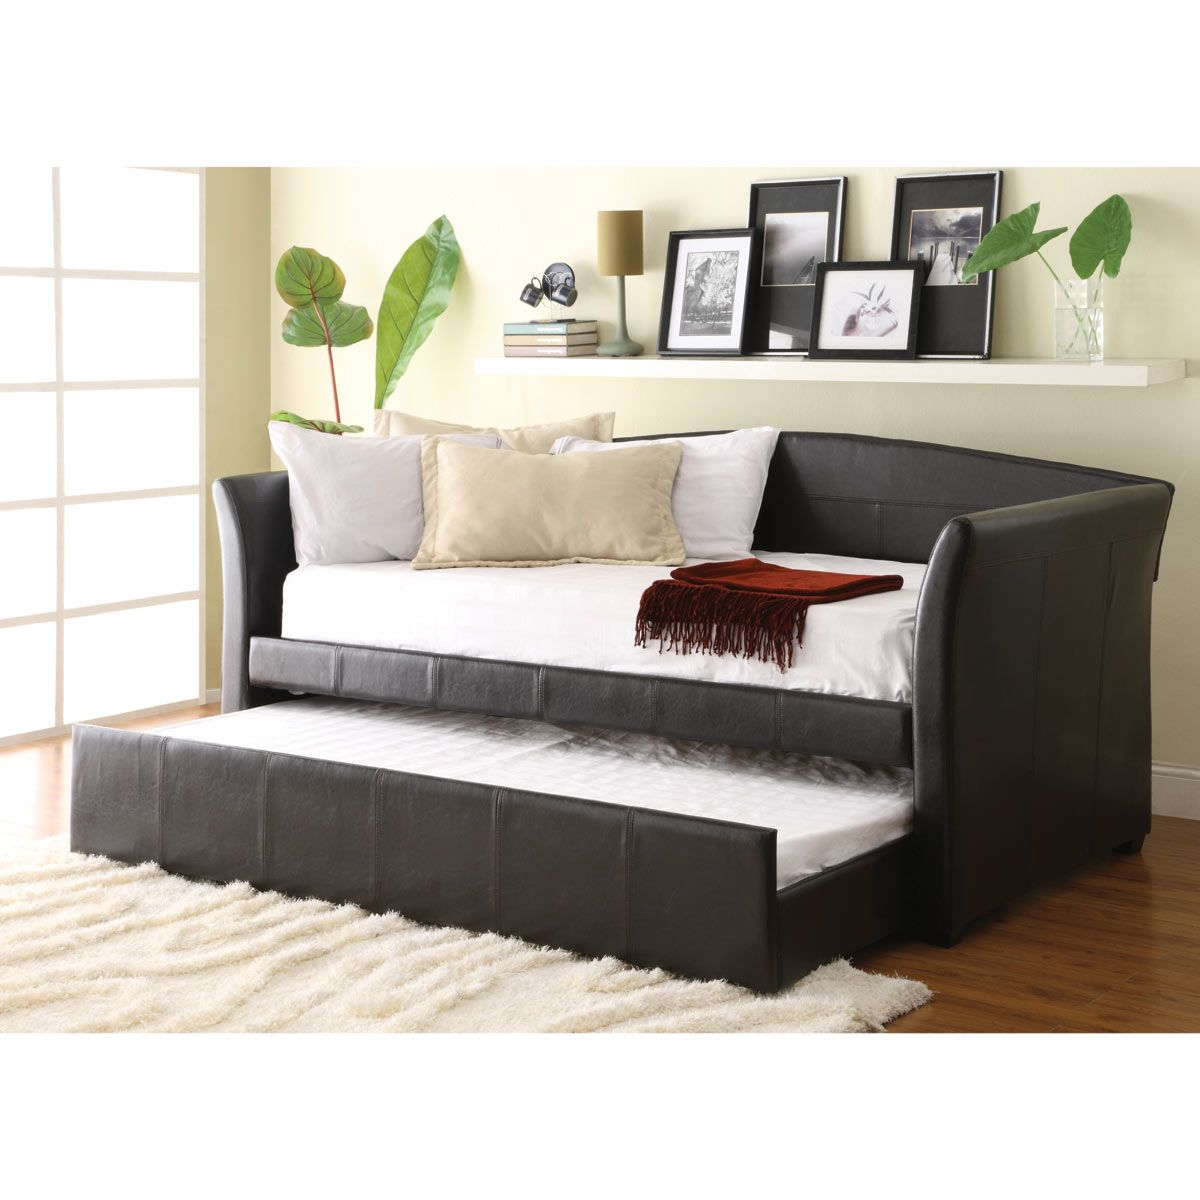 Rc Willey Kids Beds: RC Willey - Homelegance Day Bed With Trundle